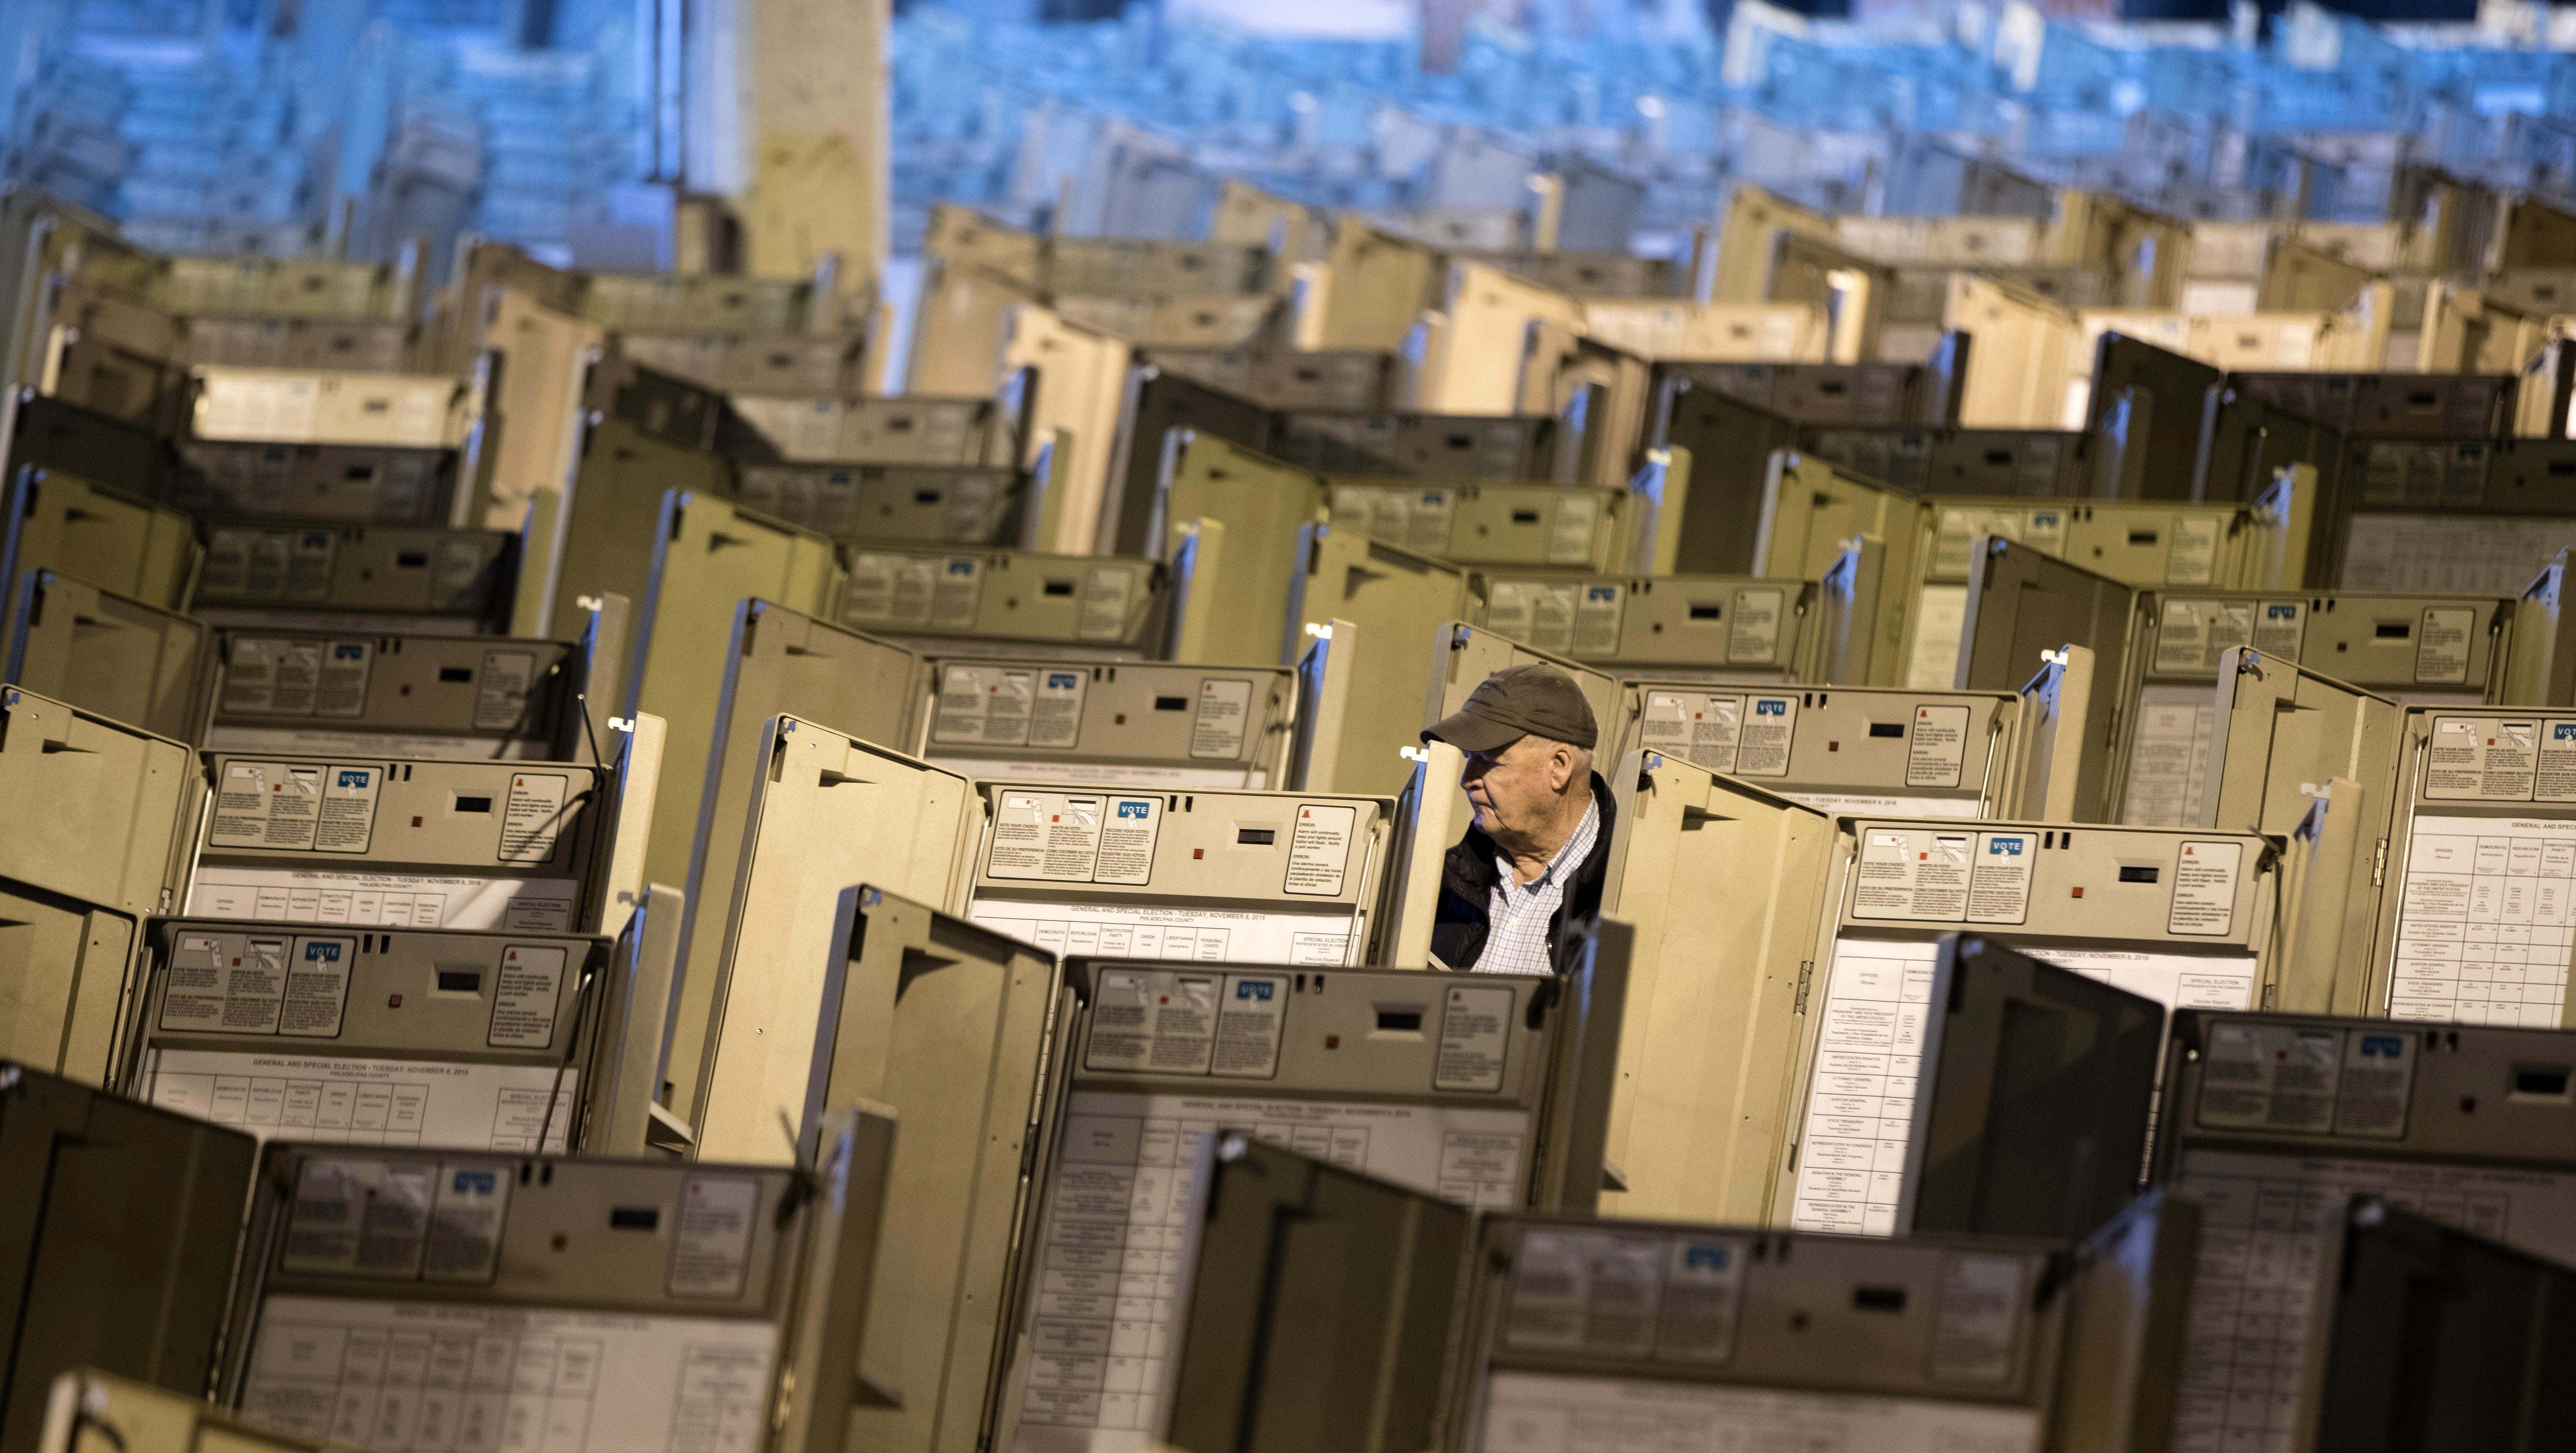 A technician works to prepare voting machines to be used in the upcoming presidential election, in Philadelphia, Friday, Oct. 14, 2016. (AP Photo/Matt Rourke)